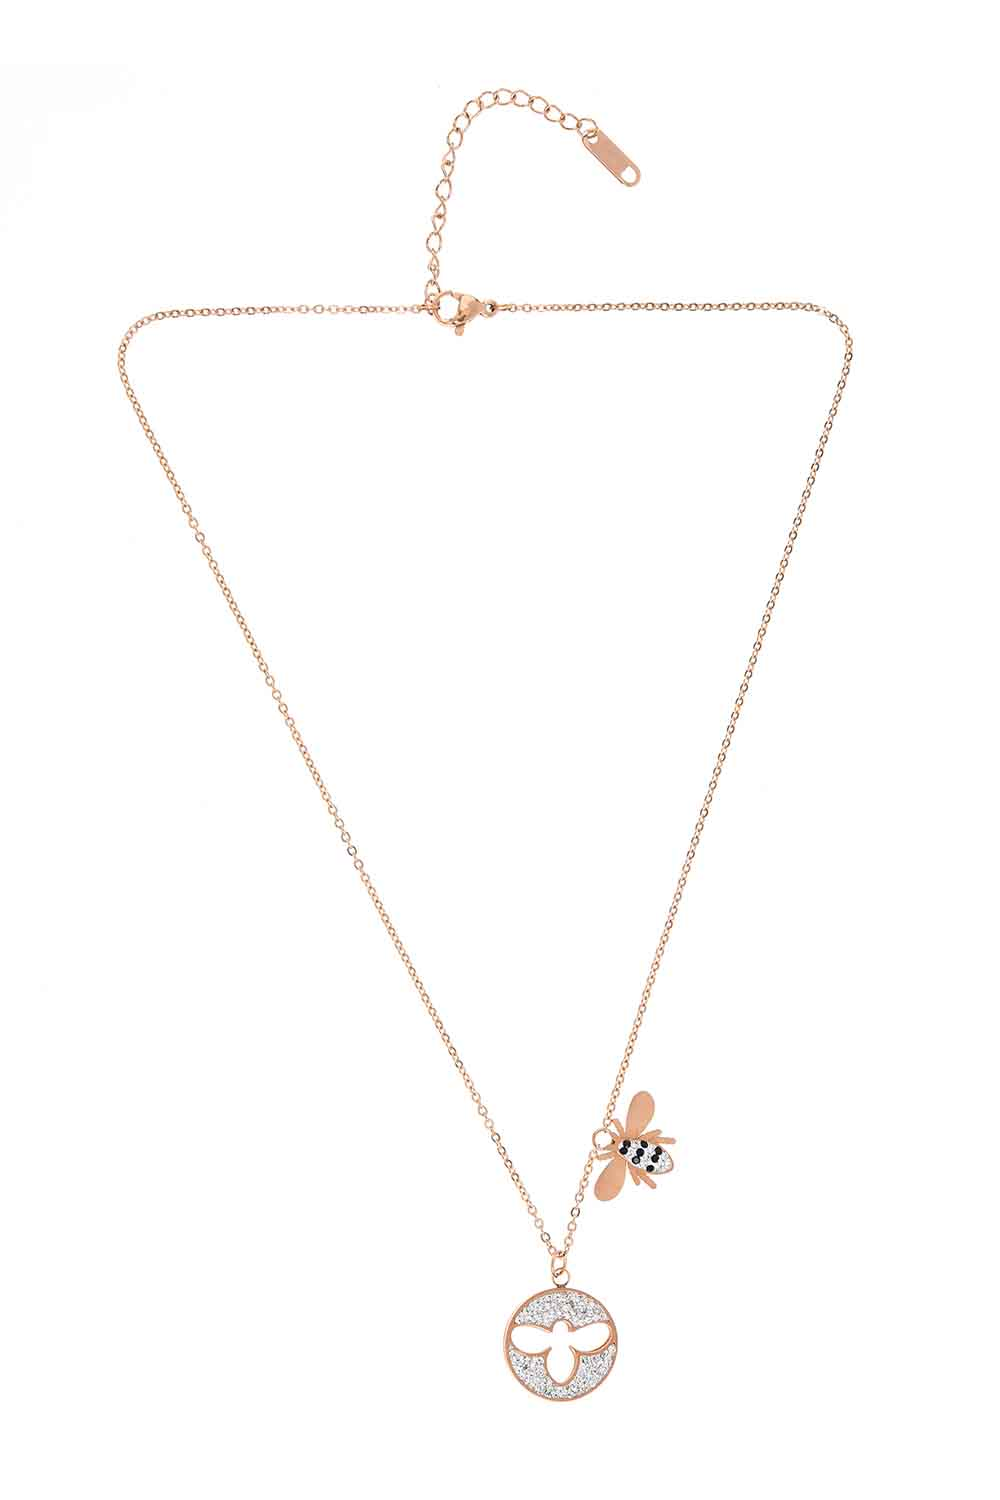 MIZALLE Bee Detailed Steel Necklace (St) (1)